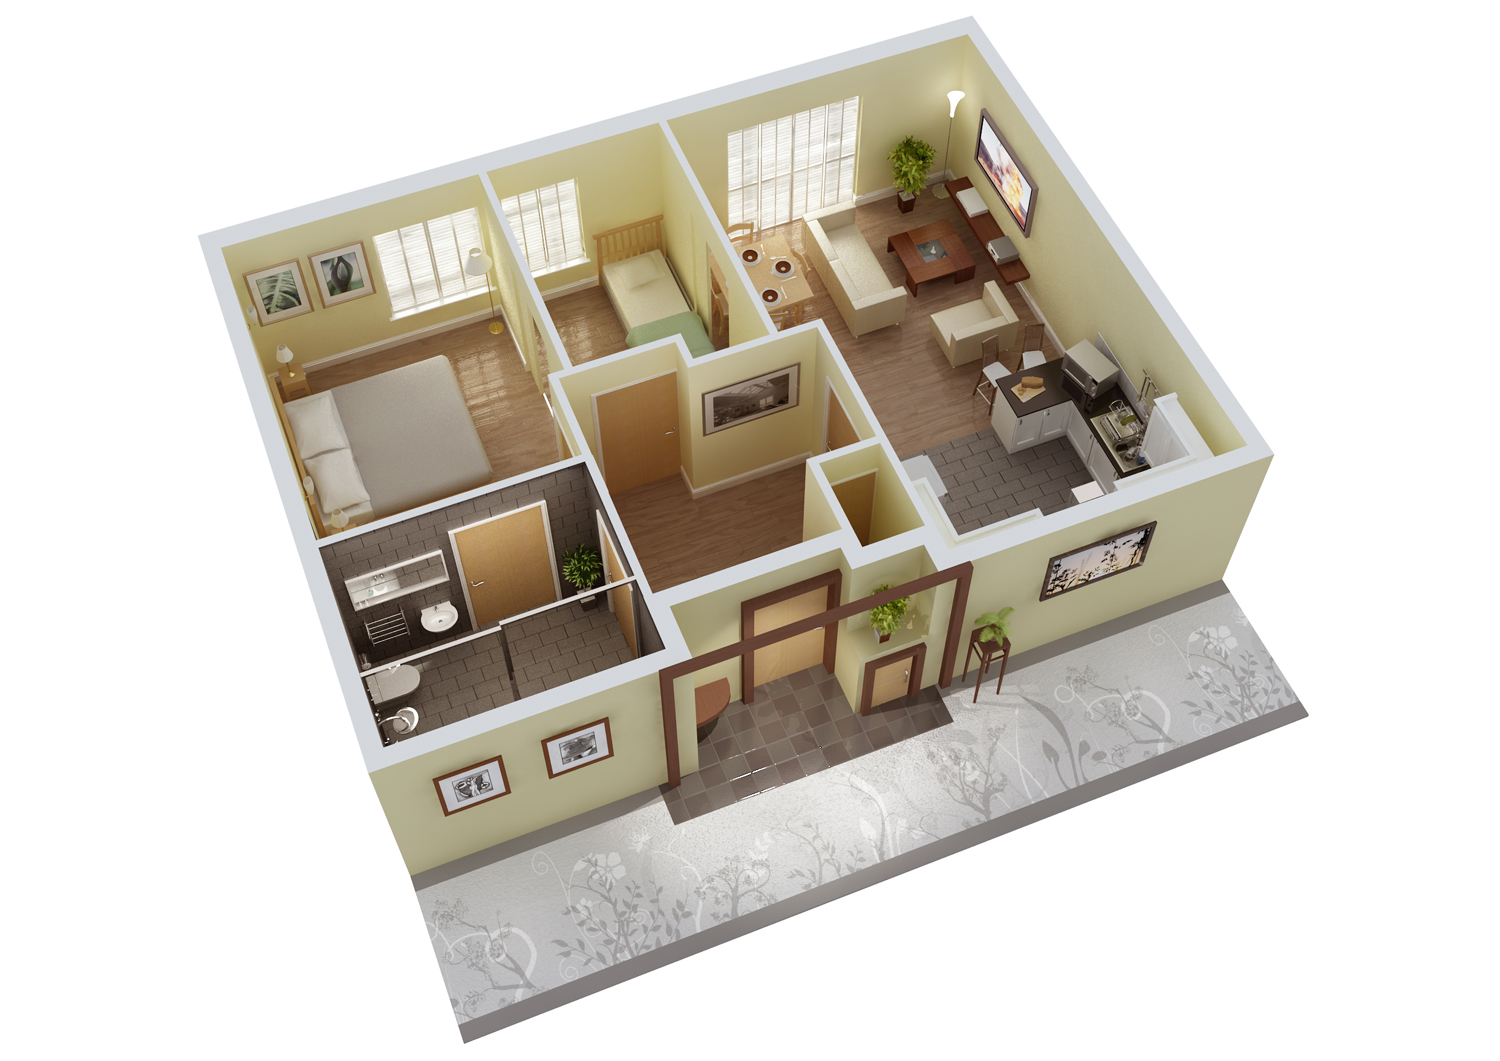 Mathematics resources project 3d floor plan Architecture design house plans 3d